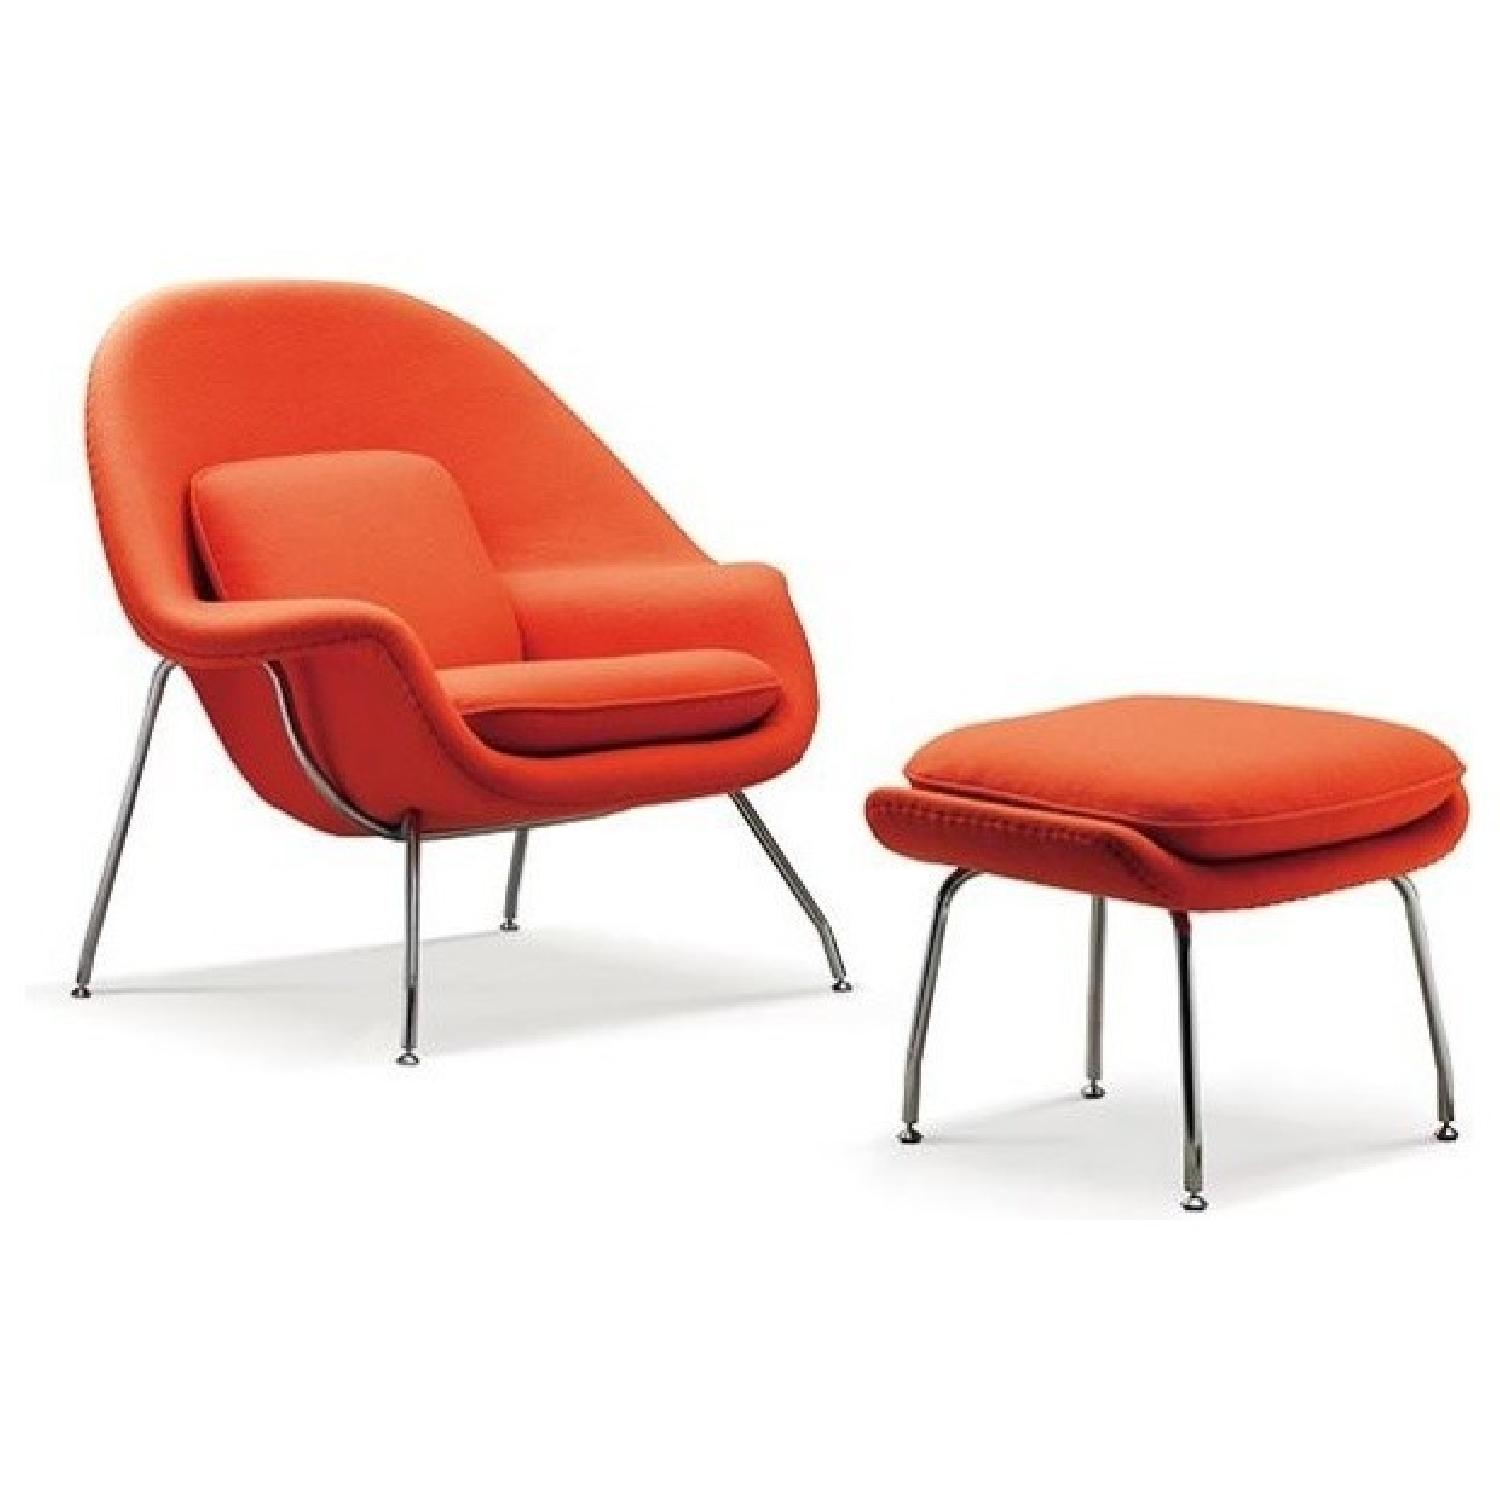 Rove Concepts Womb Chair & Ottoman - image-0